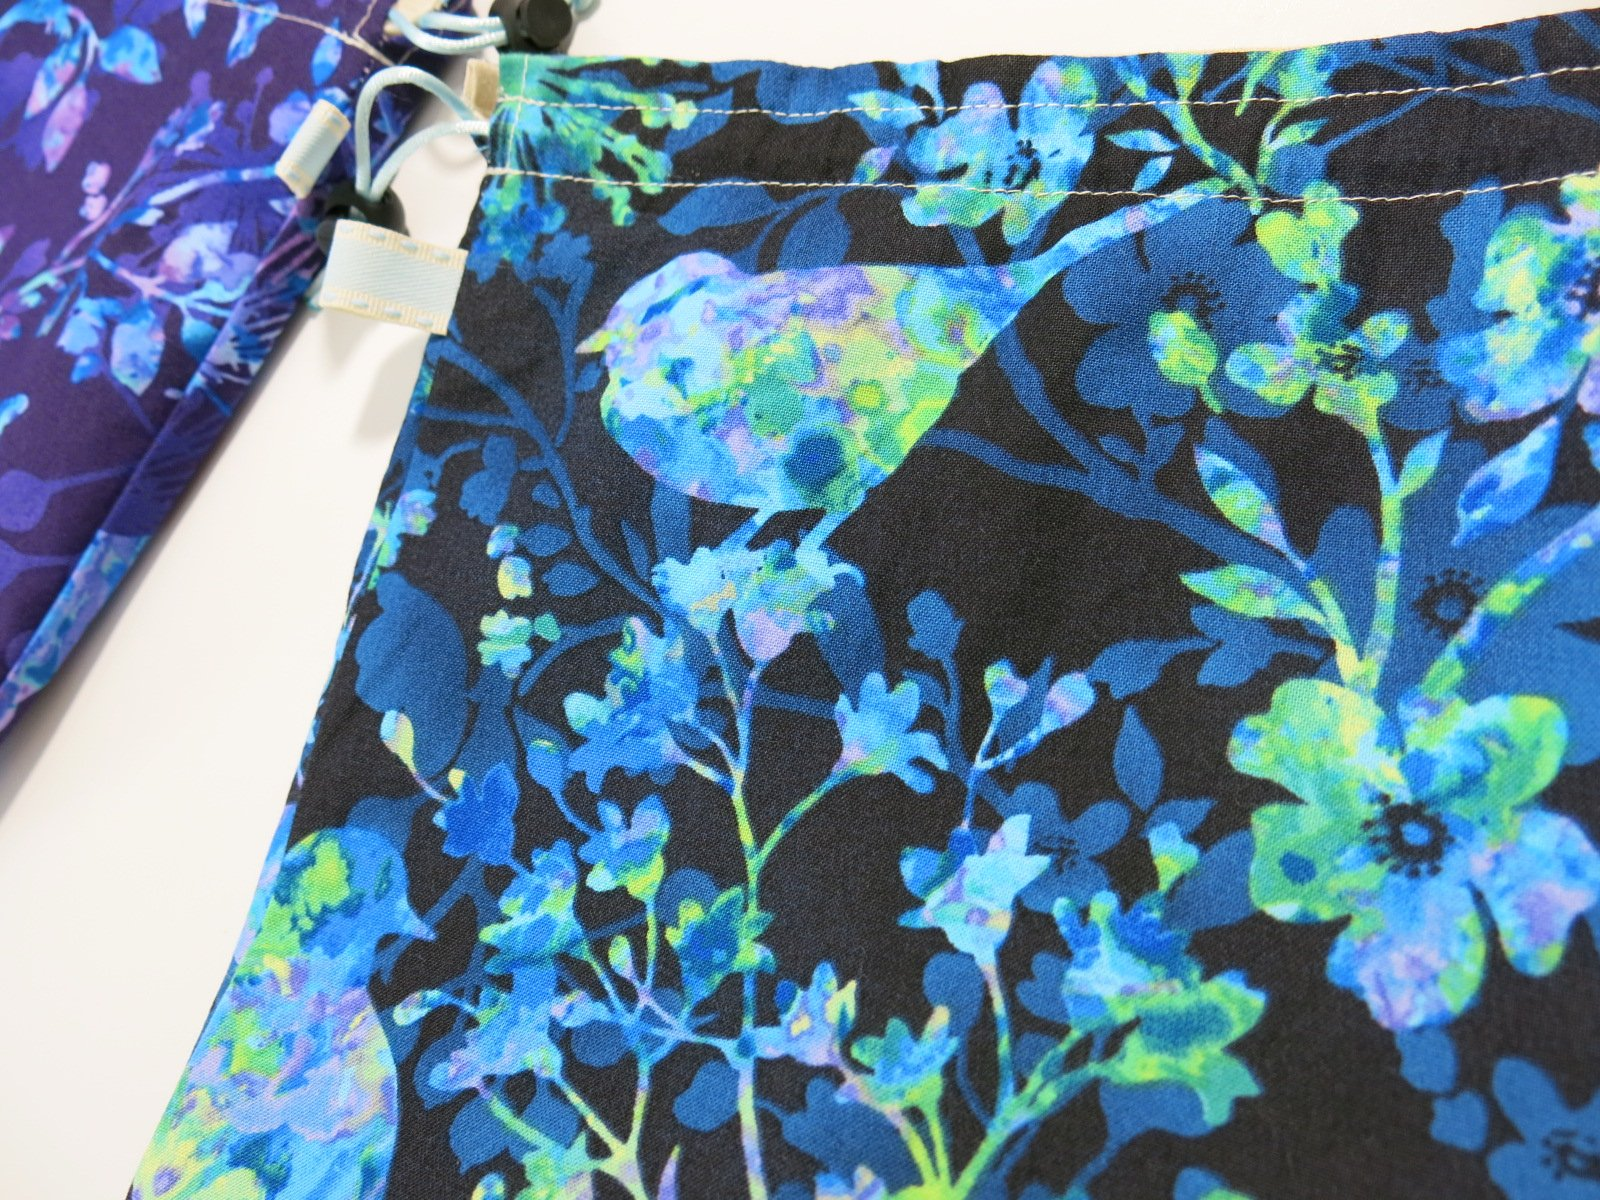 cotton drawstring knitting project bag with a batik bird and flower print in purple and blue